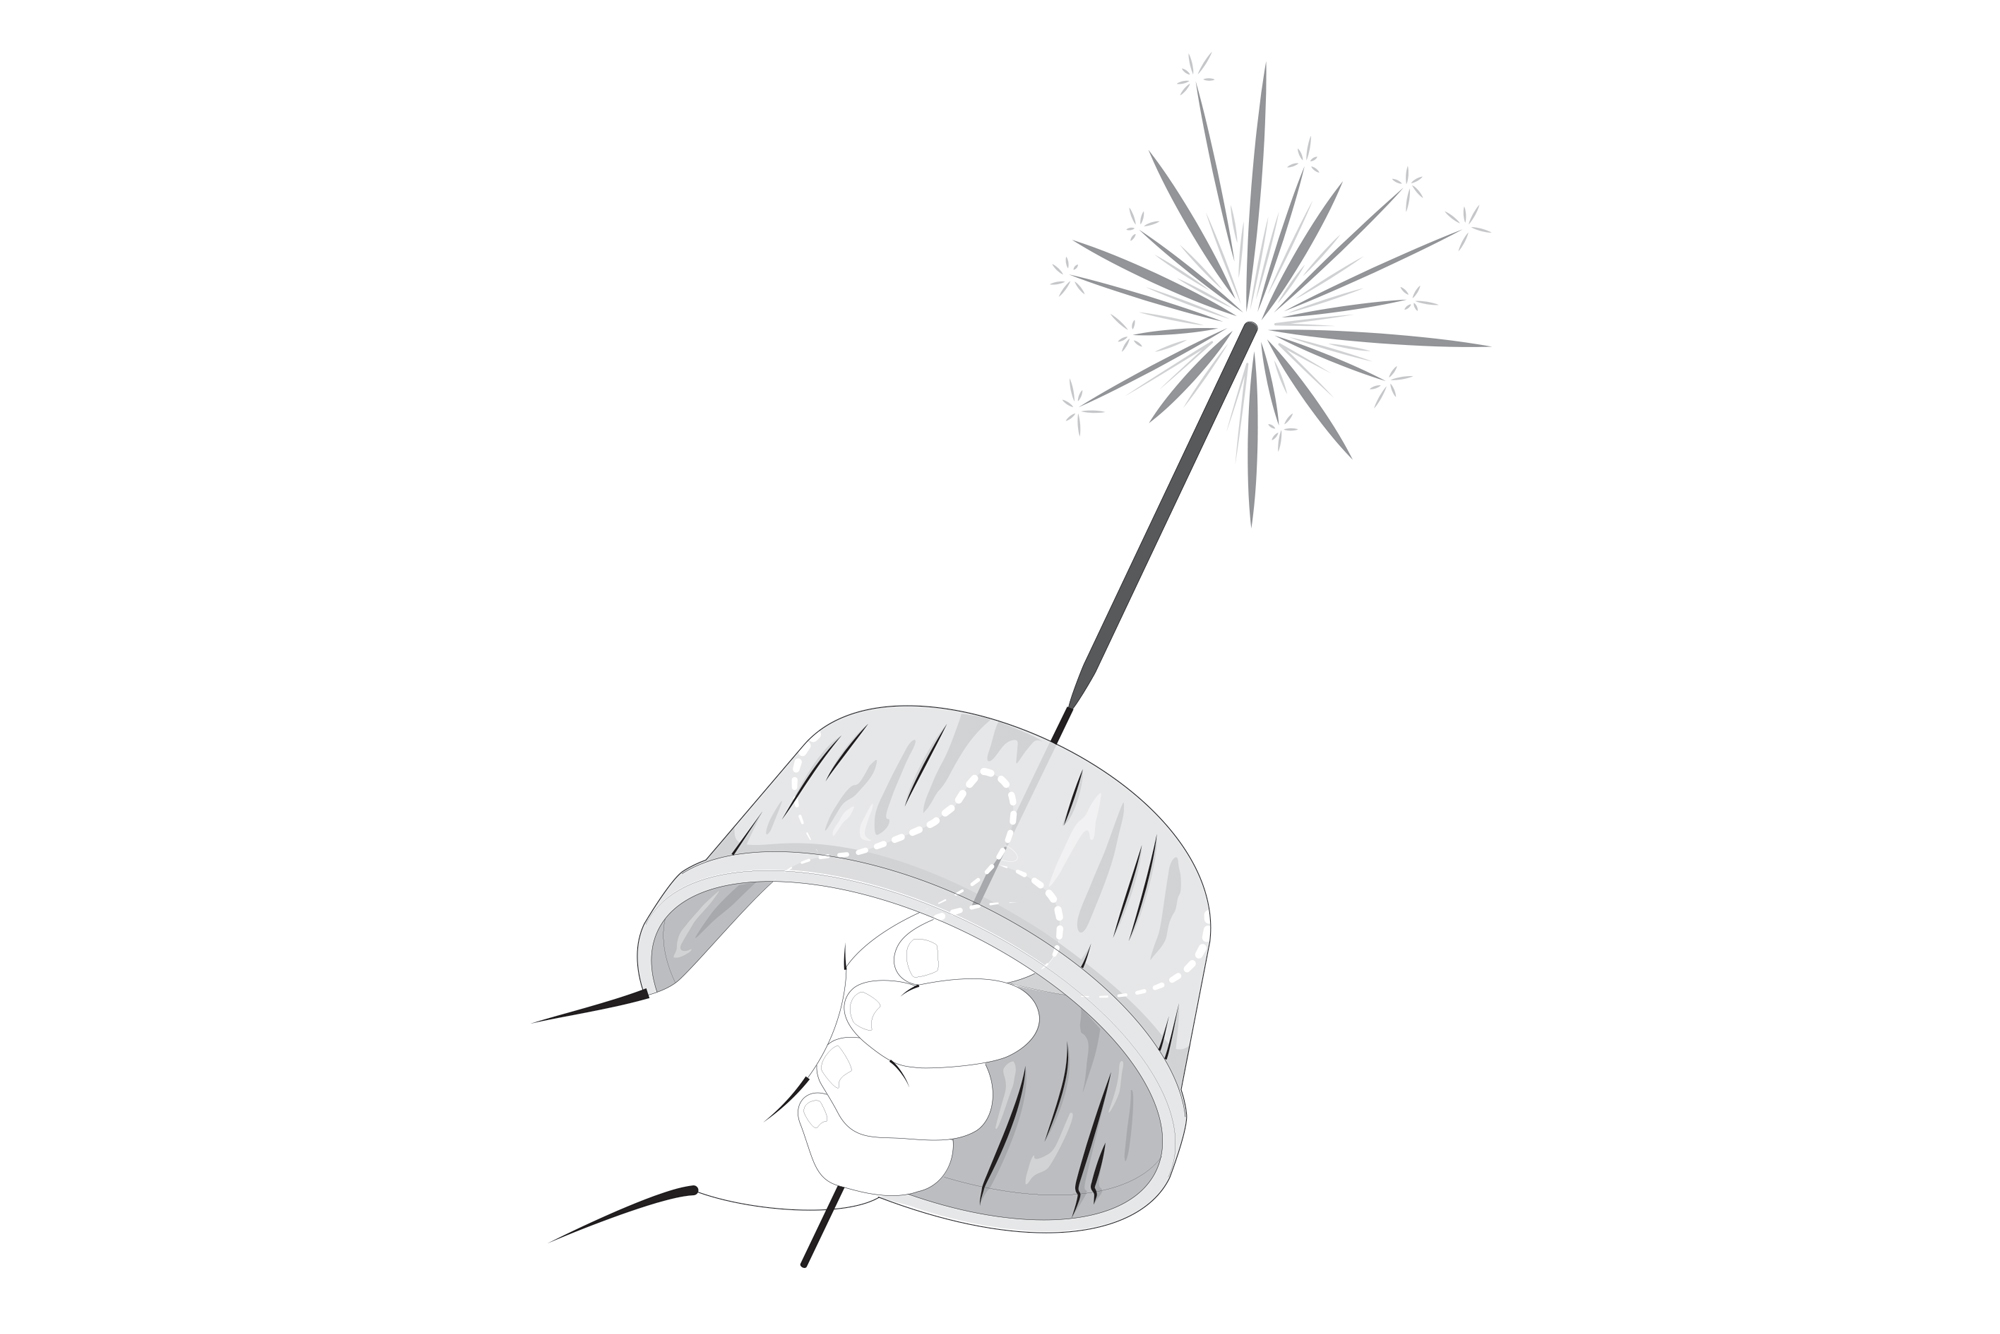 illustration of hand holding sparkler with tin guard